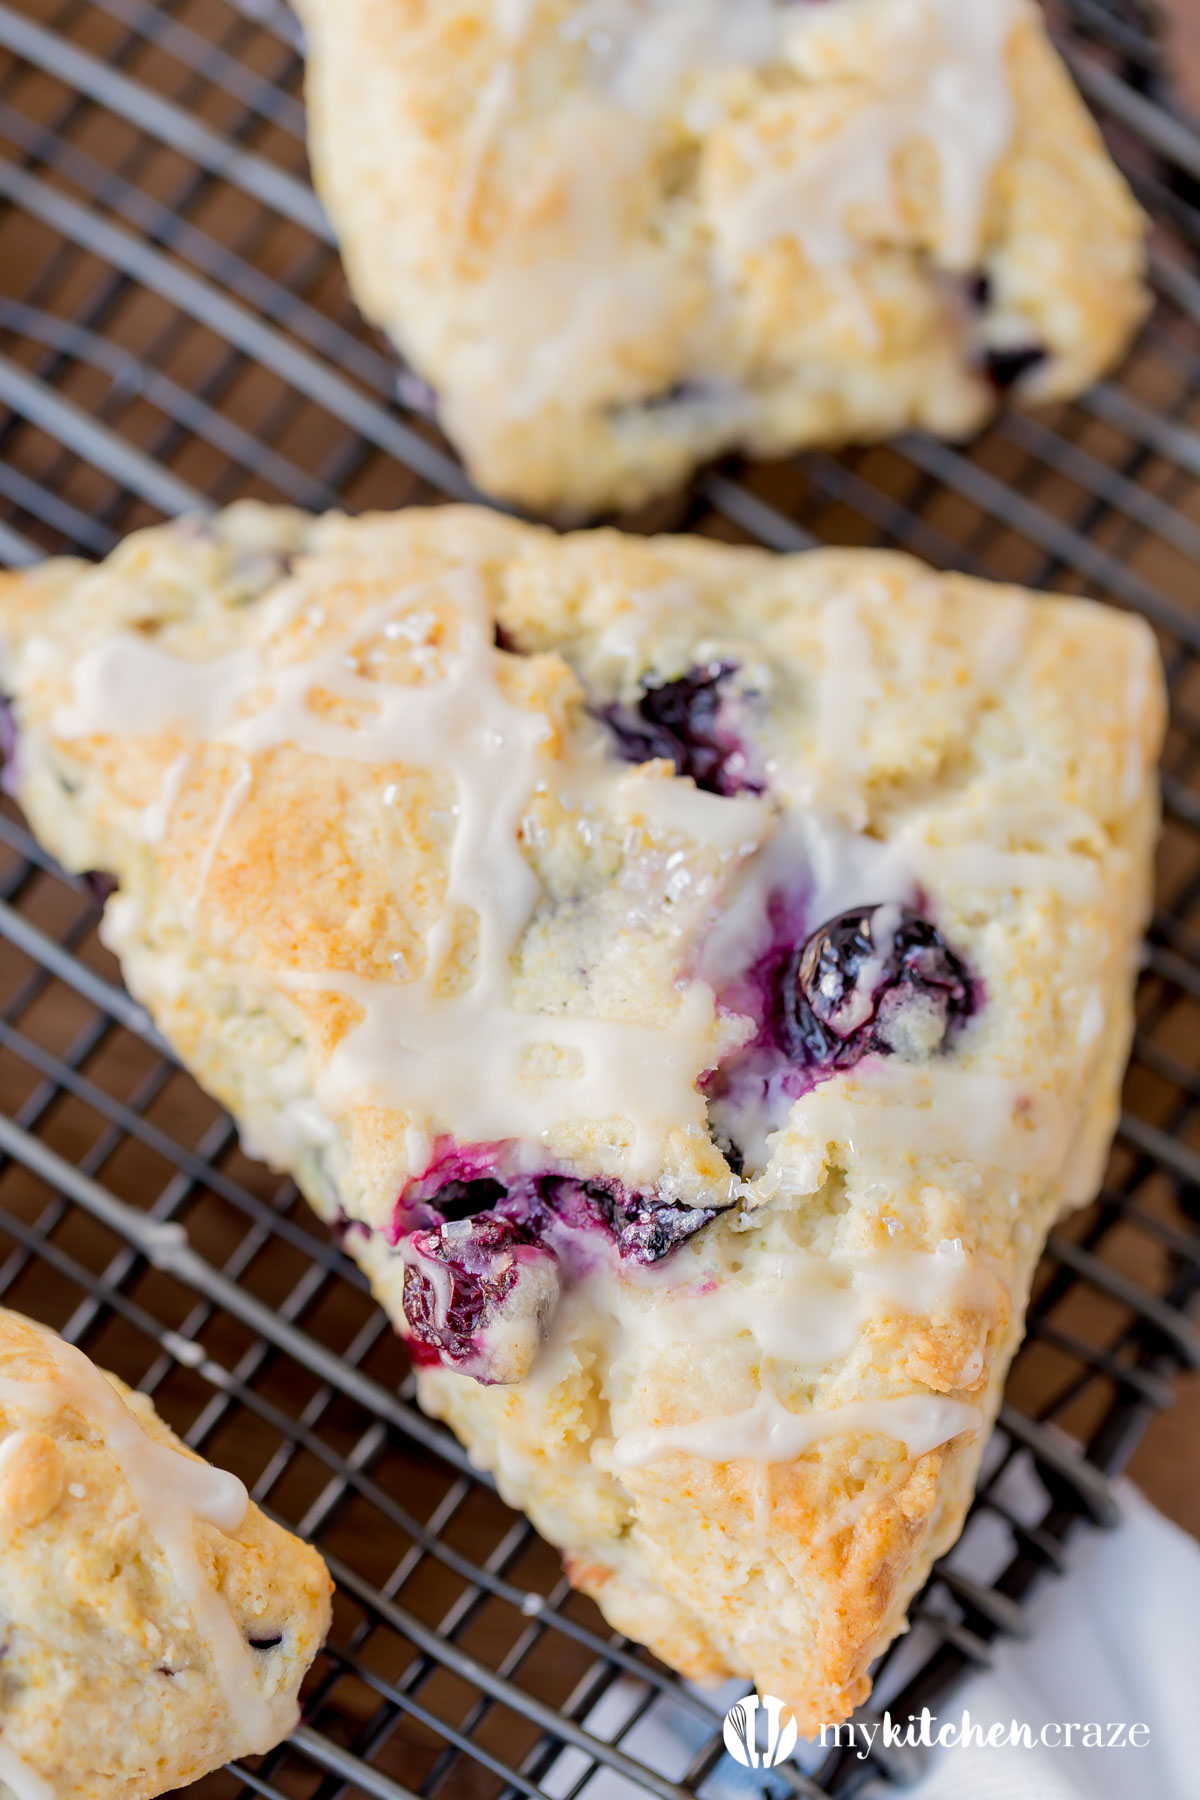 Blueberry Scones with Vanilla Glaze are perfect for a quick grab and go breakfast. They're crunchy around the edges but moist in the center. Topped with a vanilla glaze to give them a bit of sweetness.